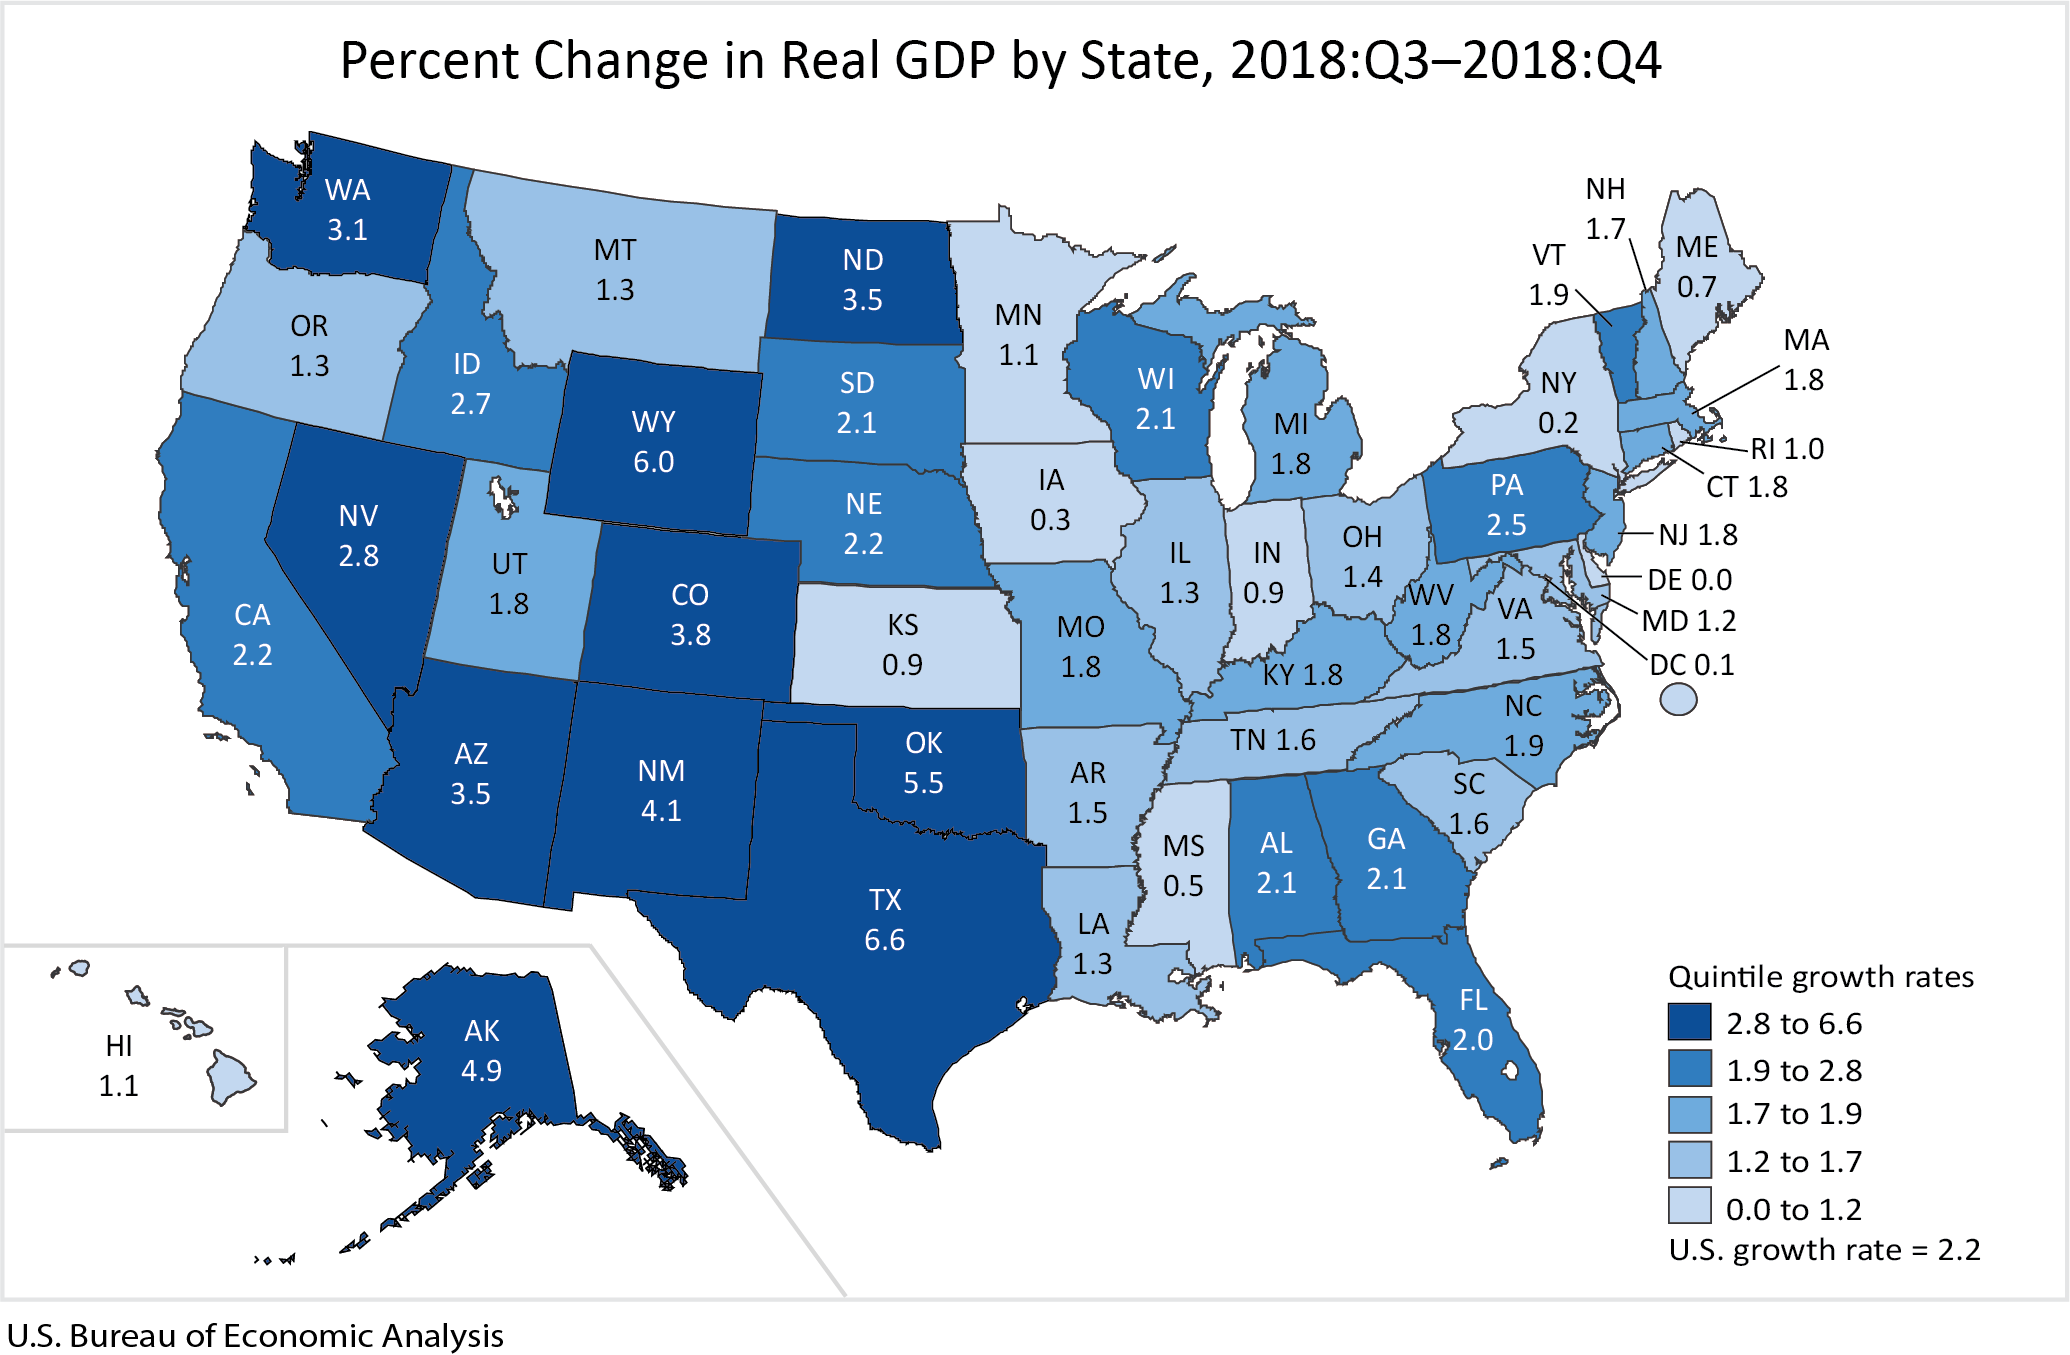 Percent Change in Real GDP by State, 2018:Q3-2018-Q4